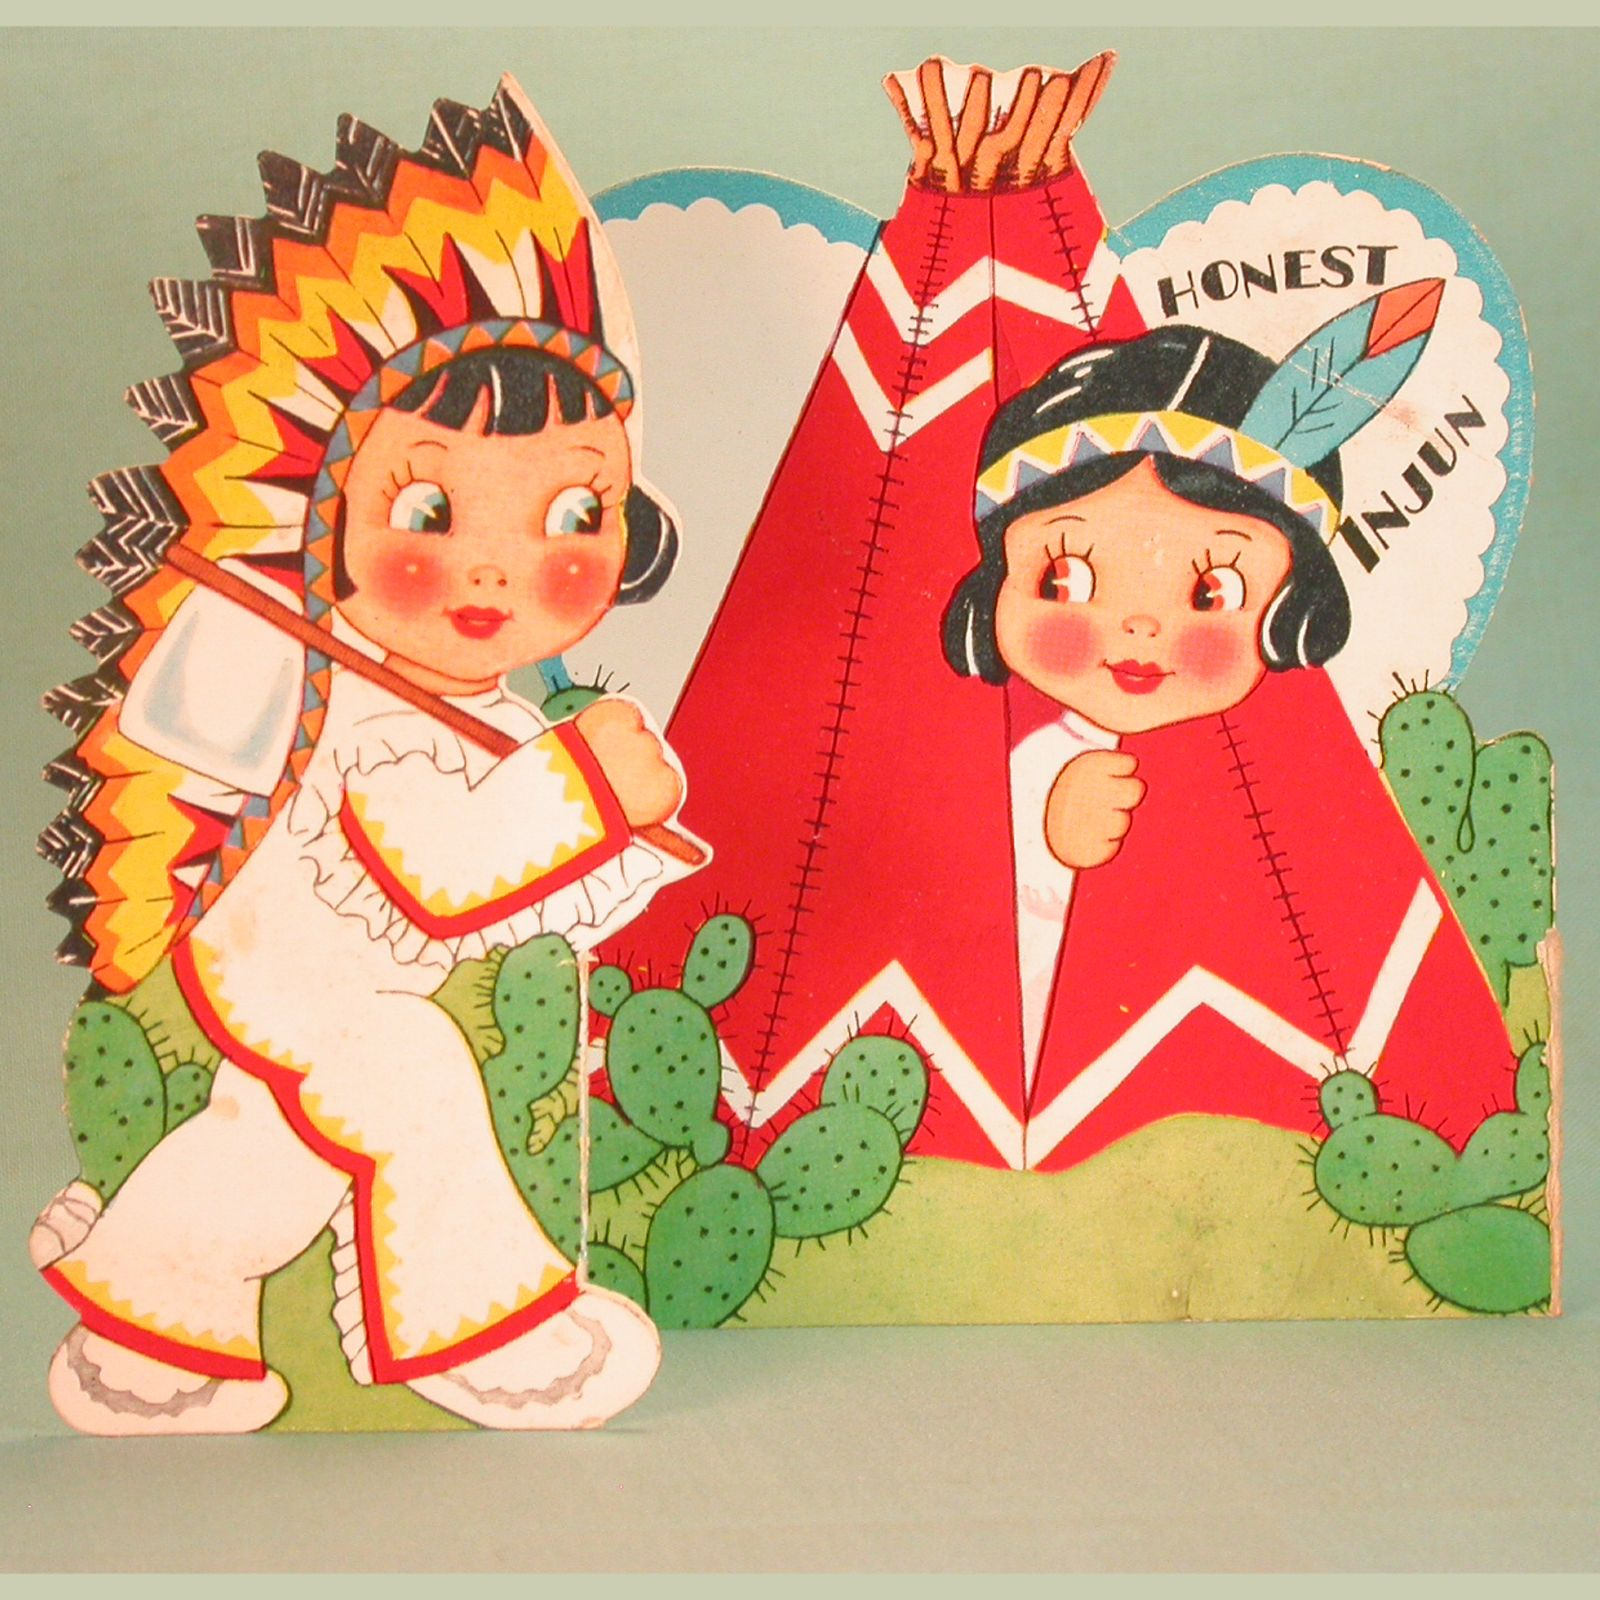 Vintage valentine museum native americanamerican indian themed vintage valentine museum native americanamerican indian themed cultural appropriation cracker kristyandbryce Choice Image